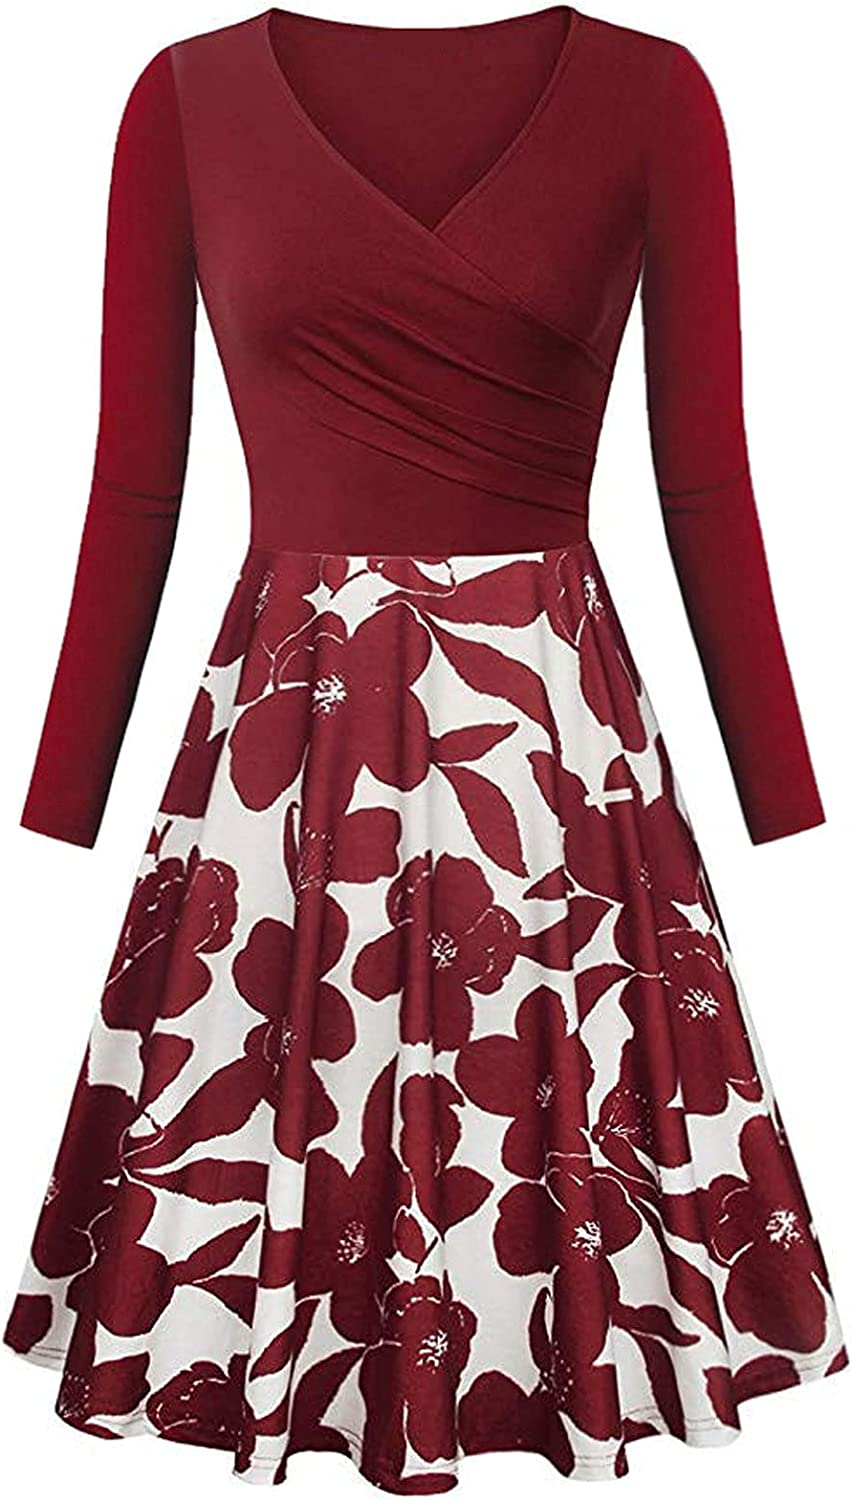 Oakland Mall Midi Dress with Long Lowest price challenge Sleeves fo Swing Casual Dresses Autumn